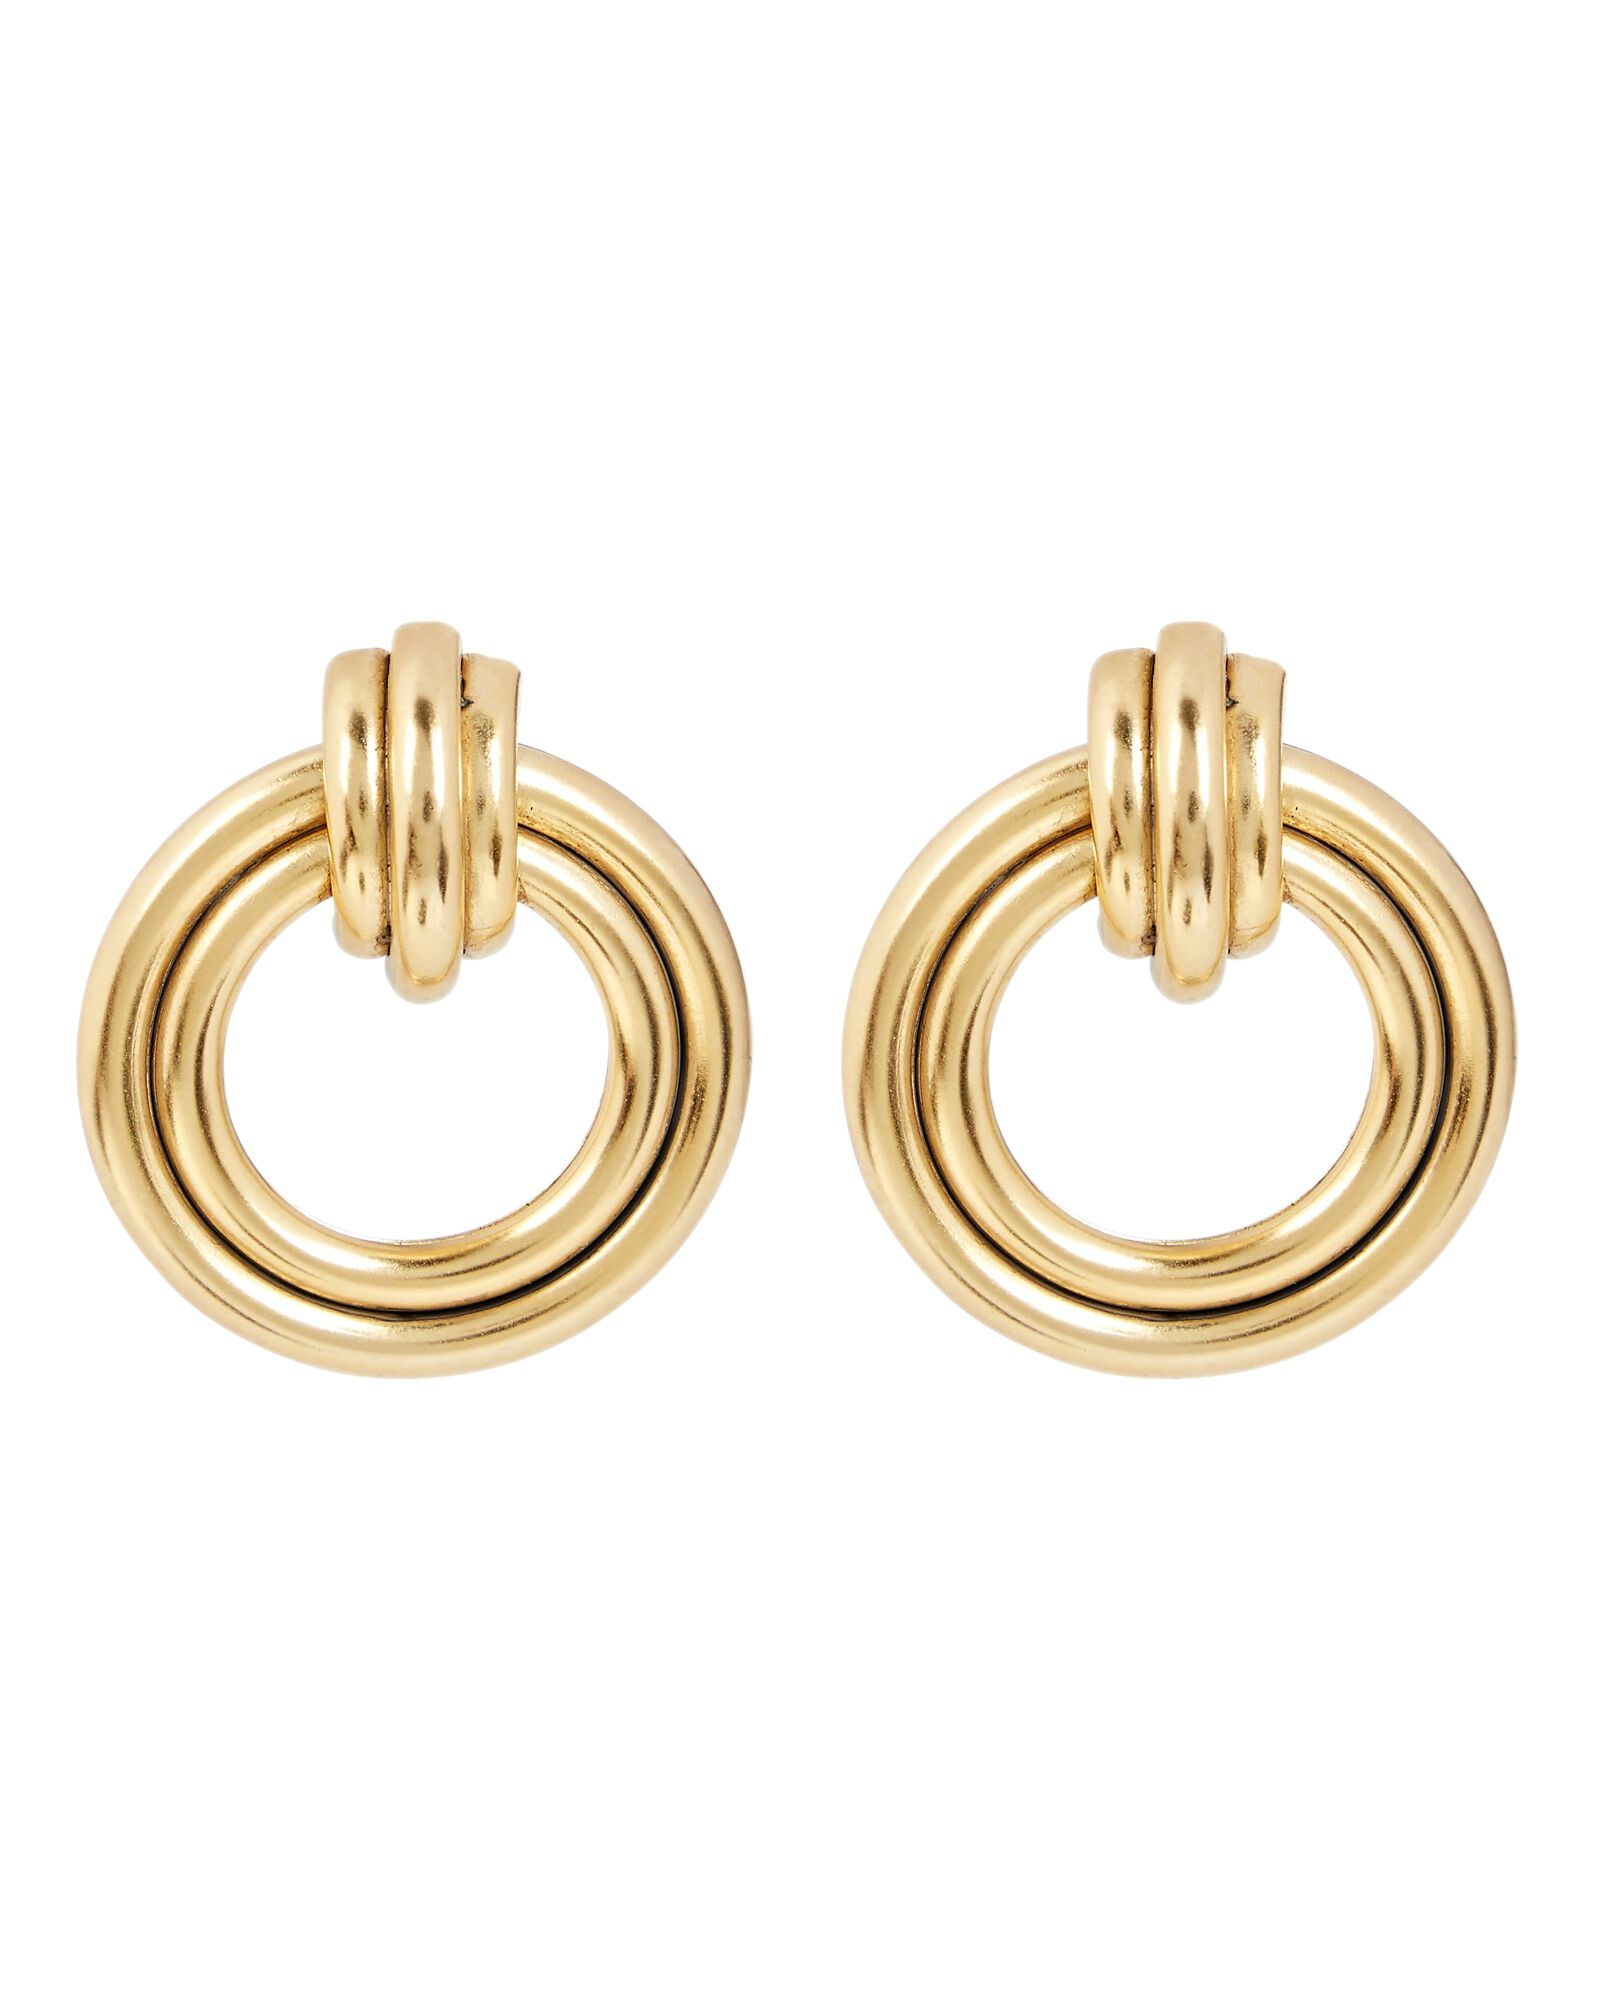 Double Trouble Ring Earrings, GOLD, hi-res